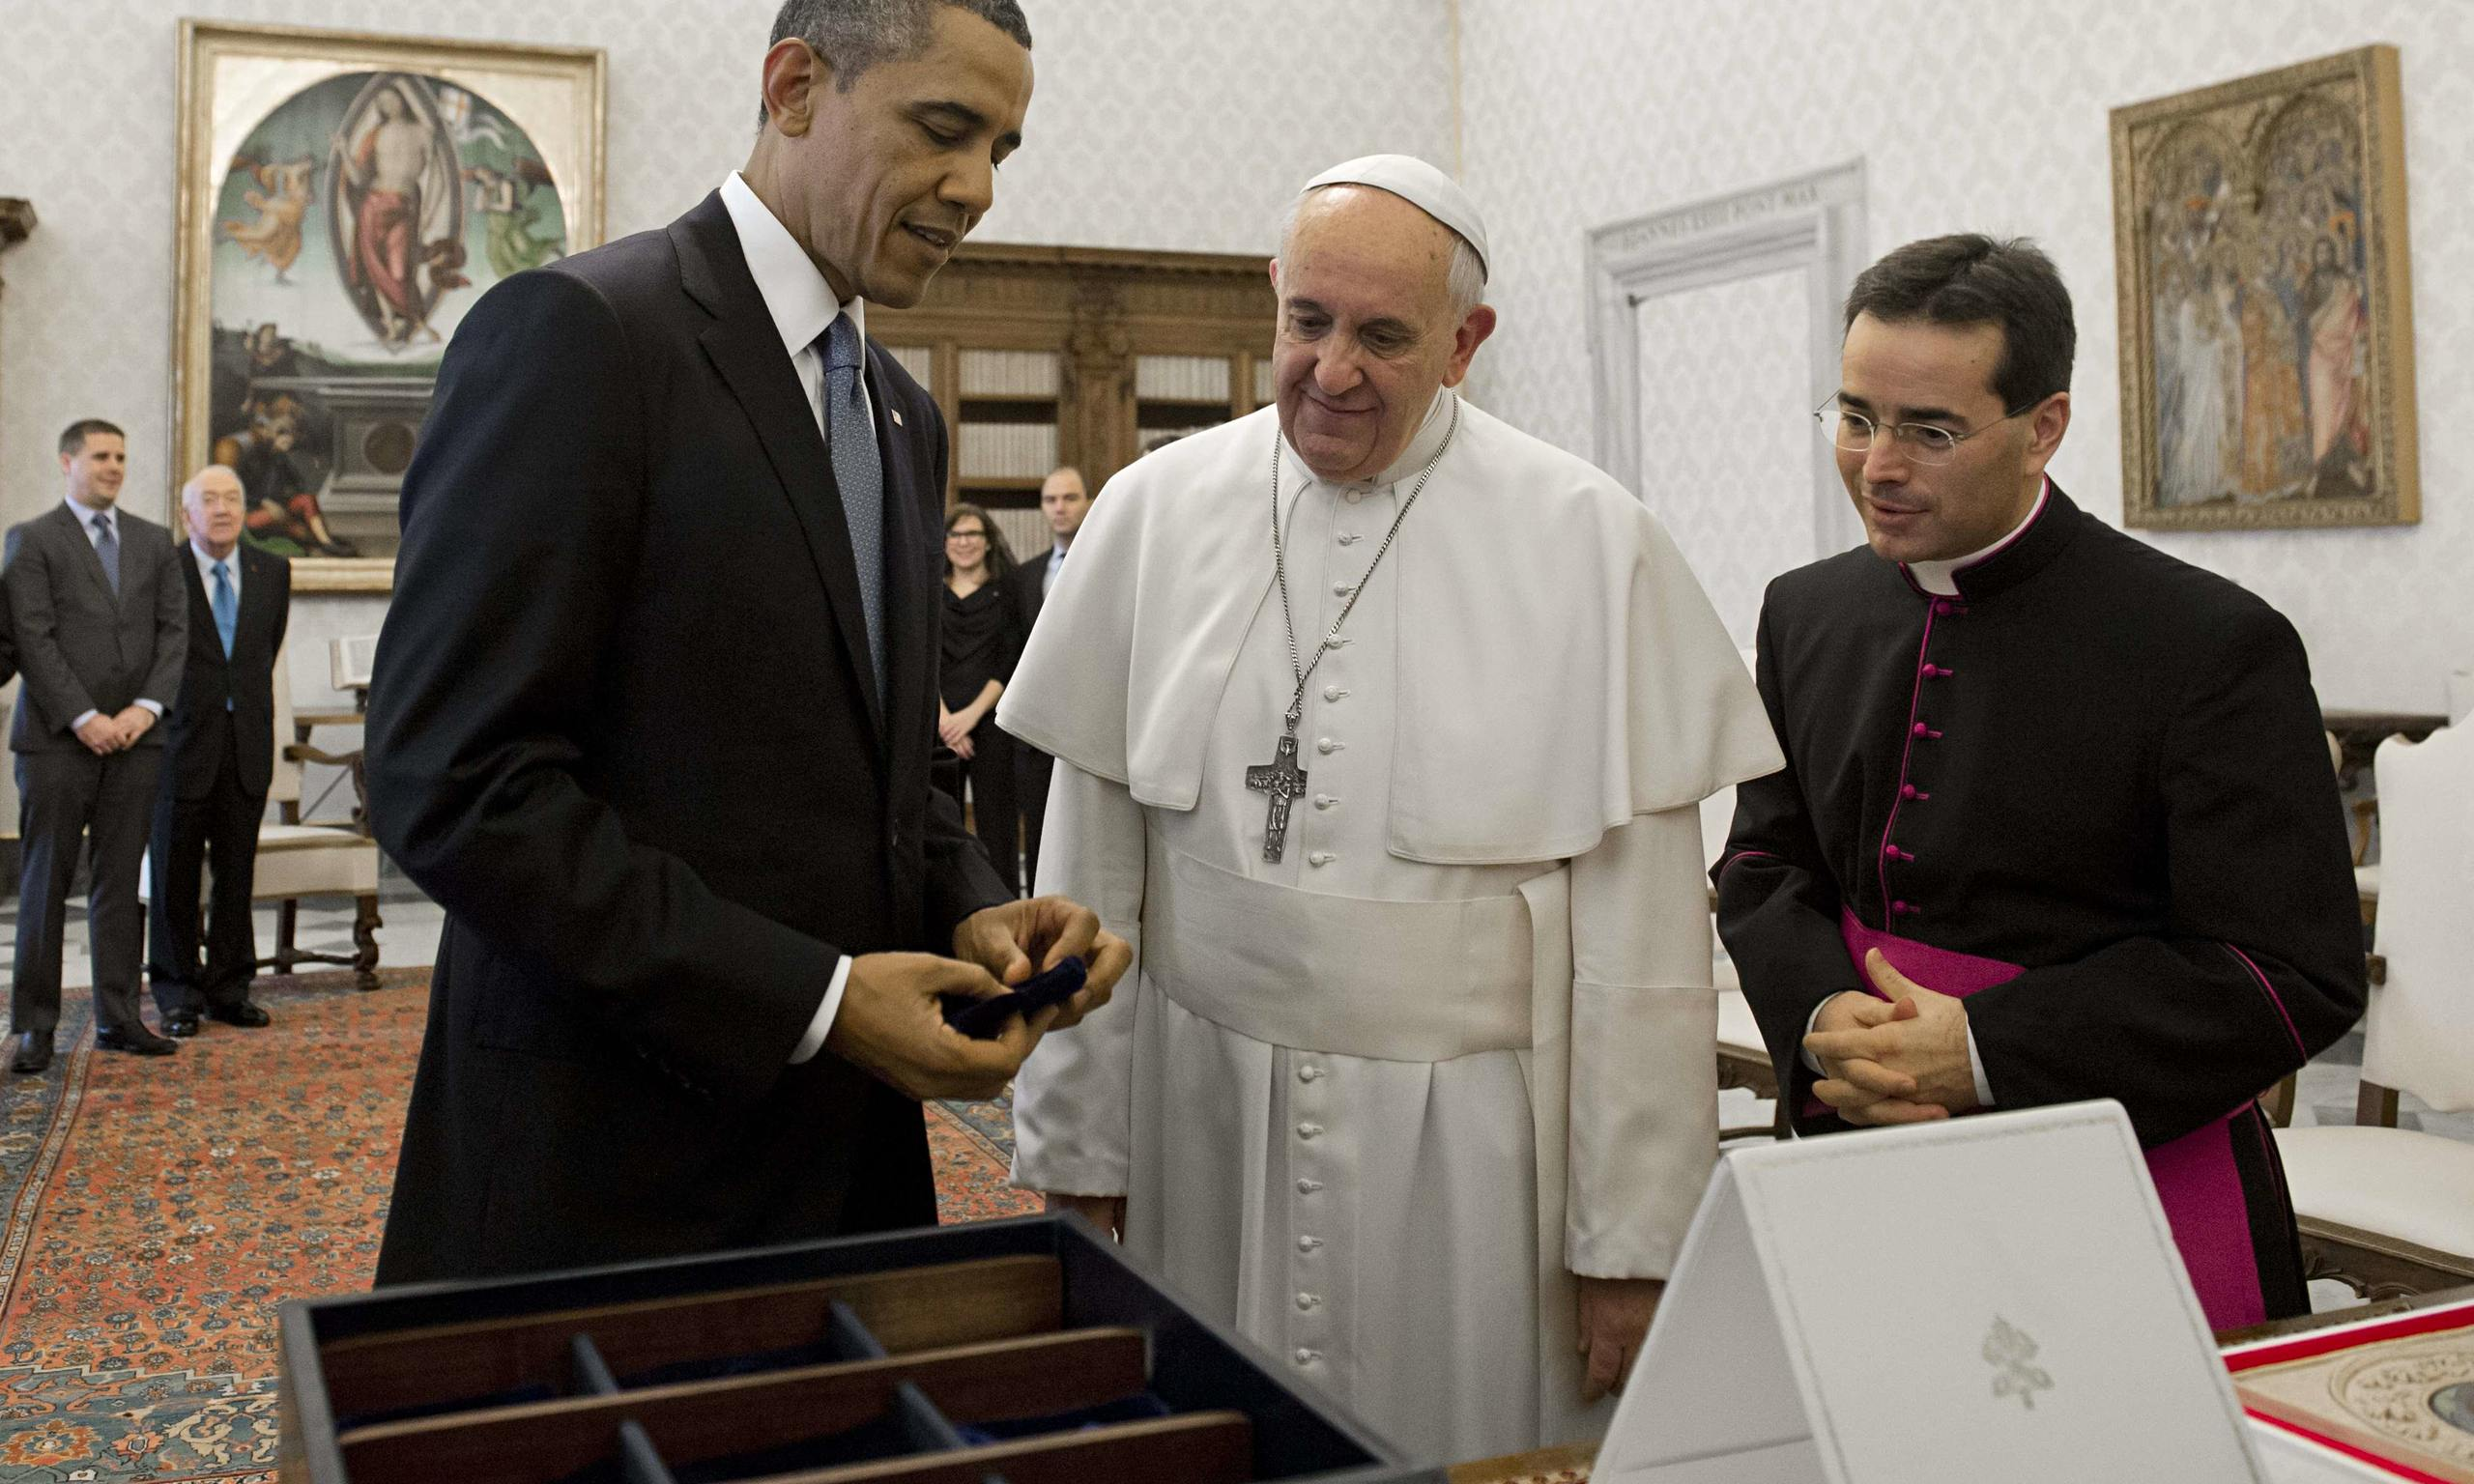 Is it Monsanto seeds that Obama is giving to Pope?